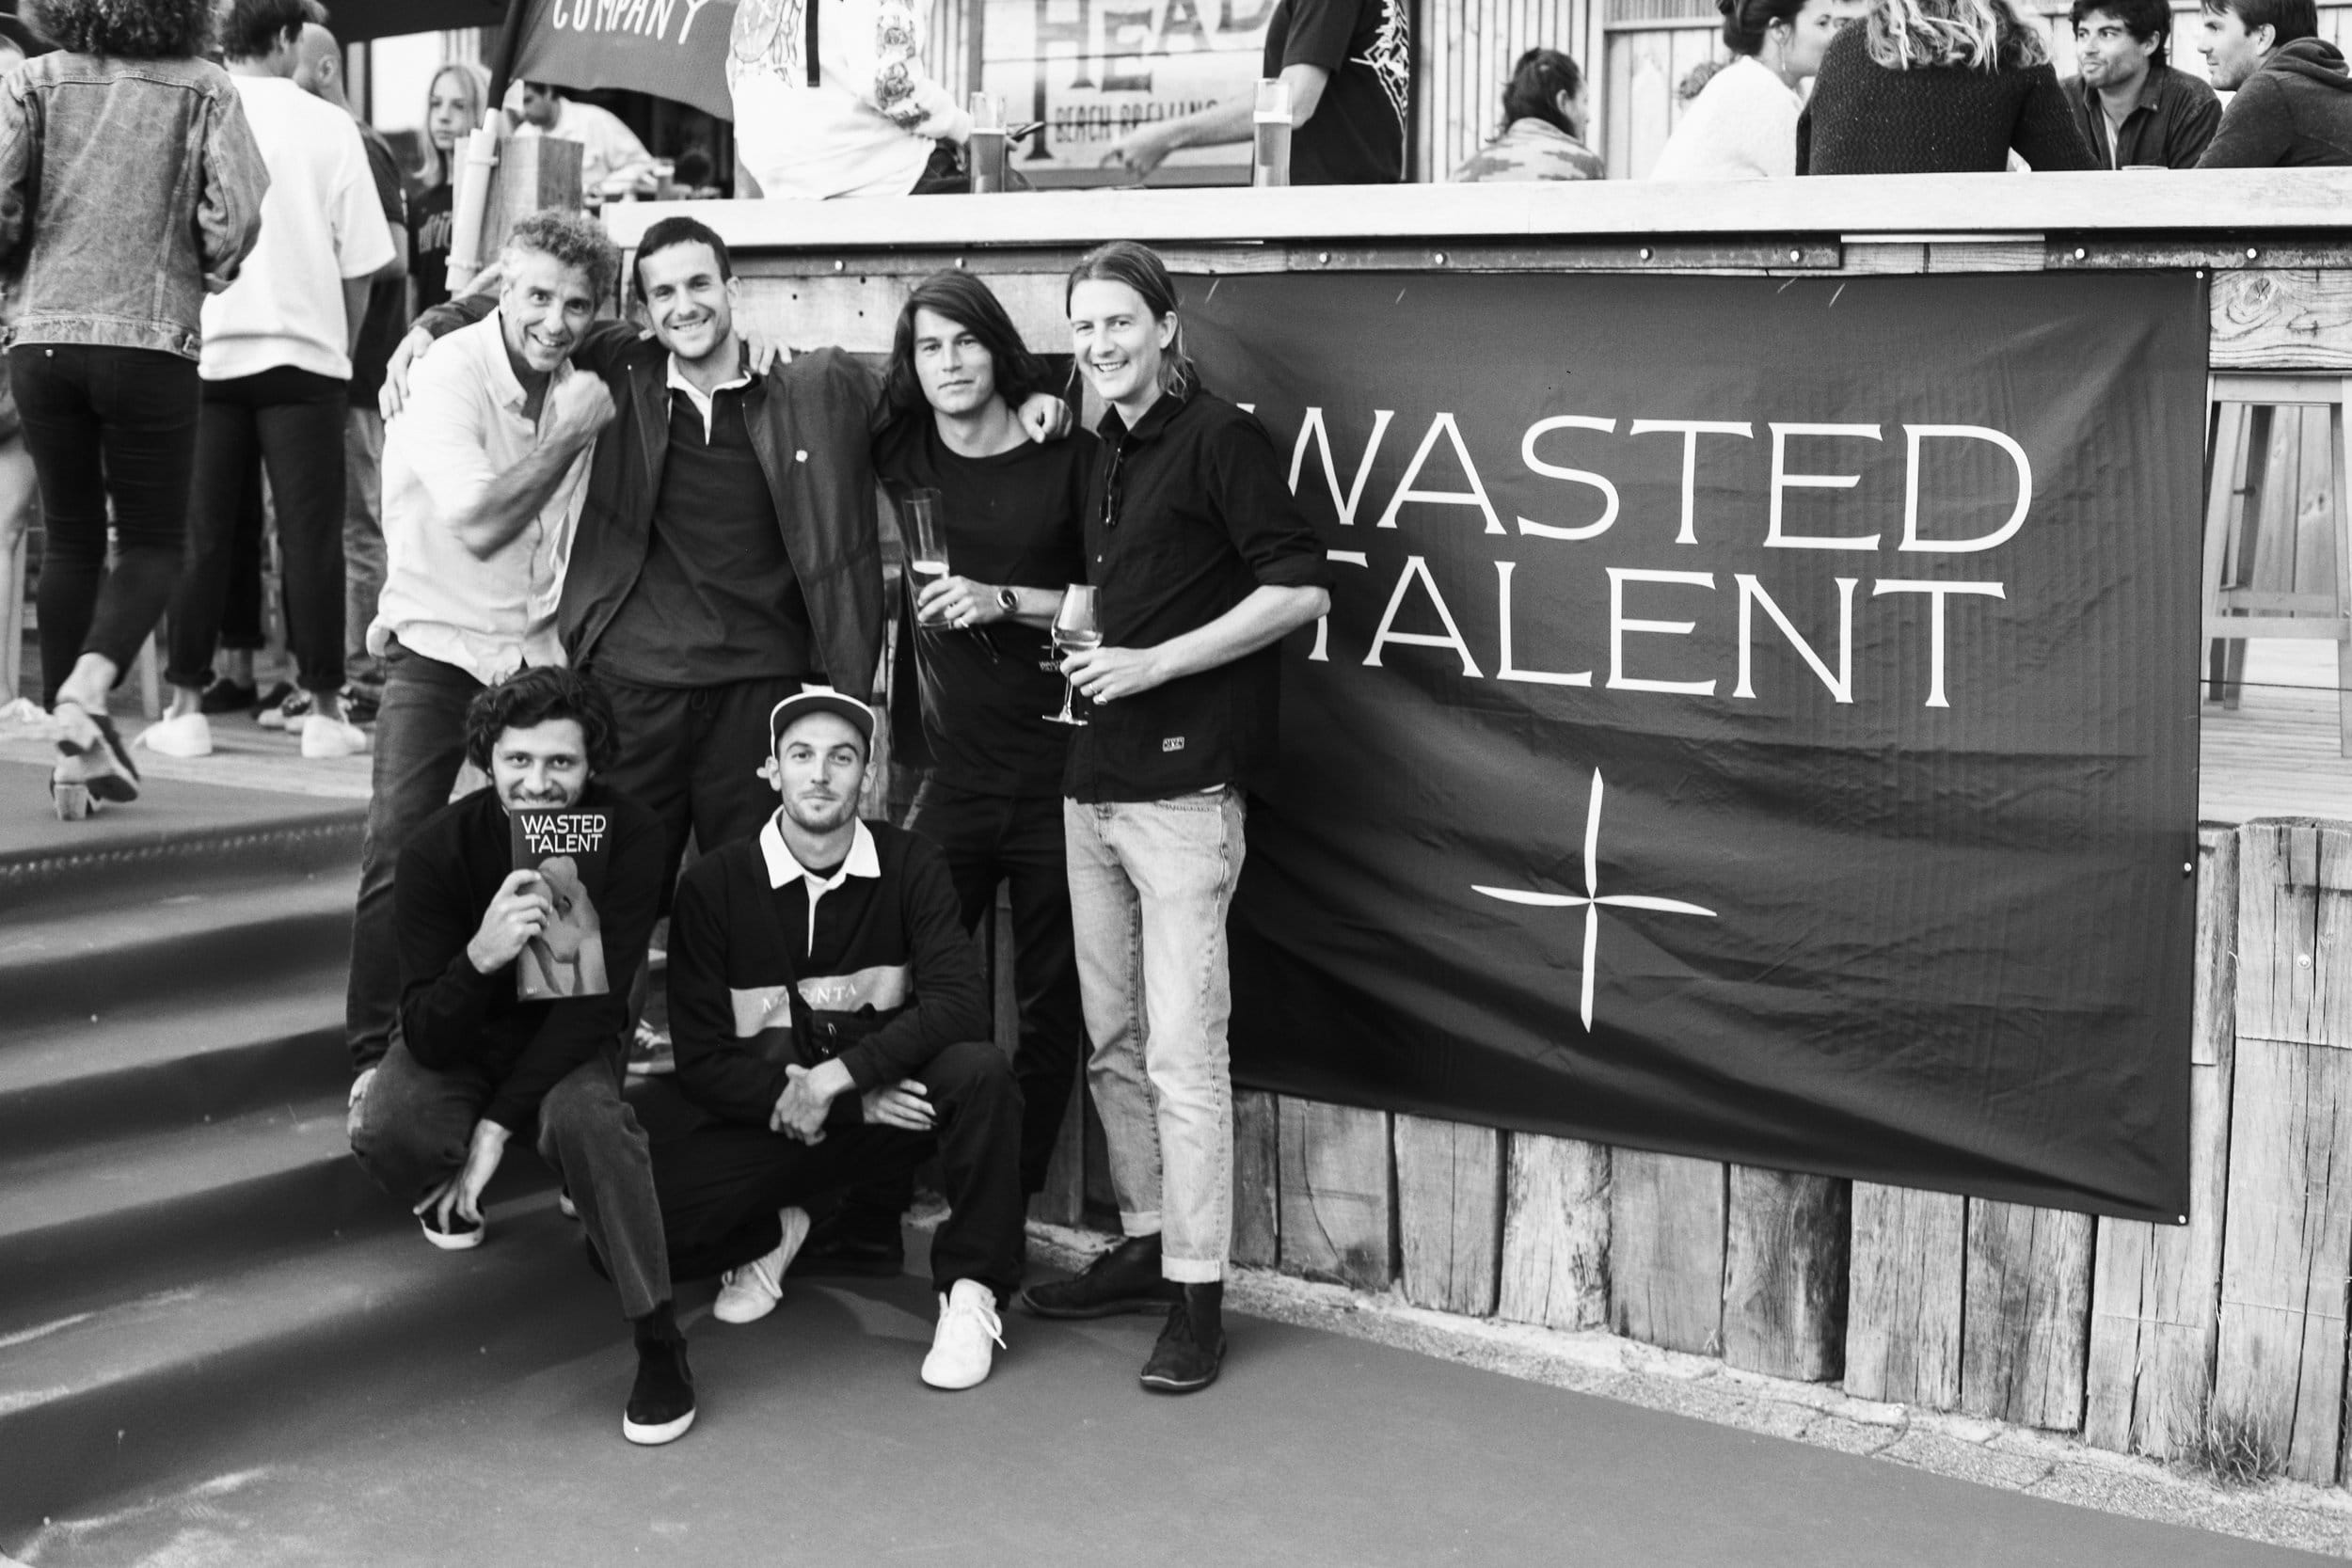 Wasted talent photo remi bedora